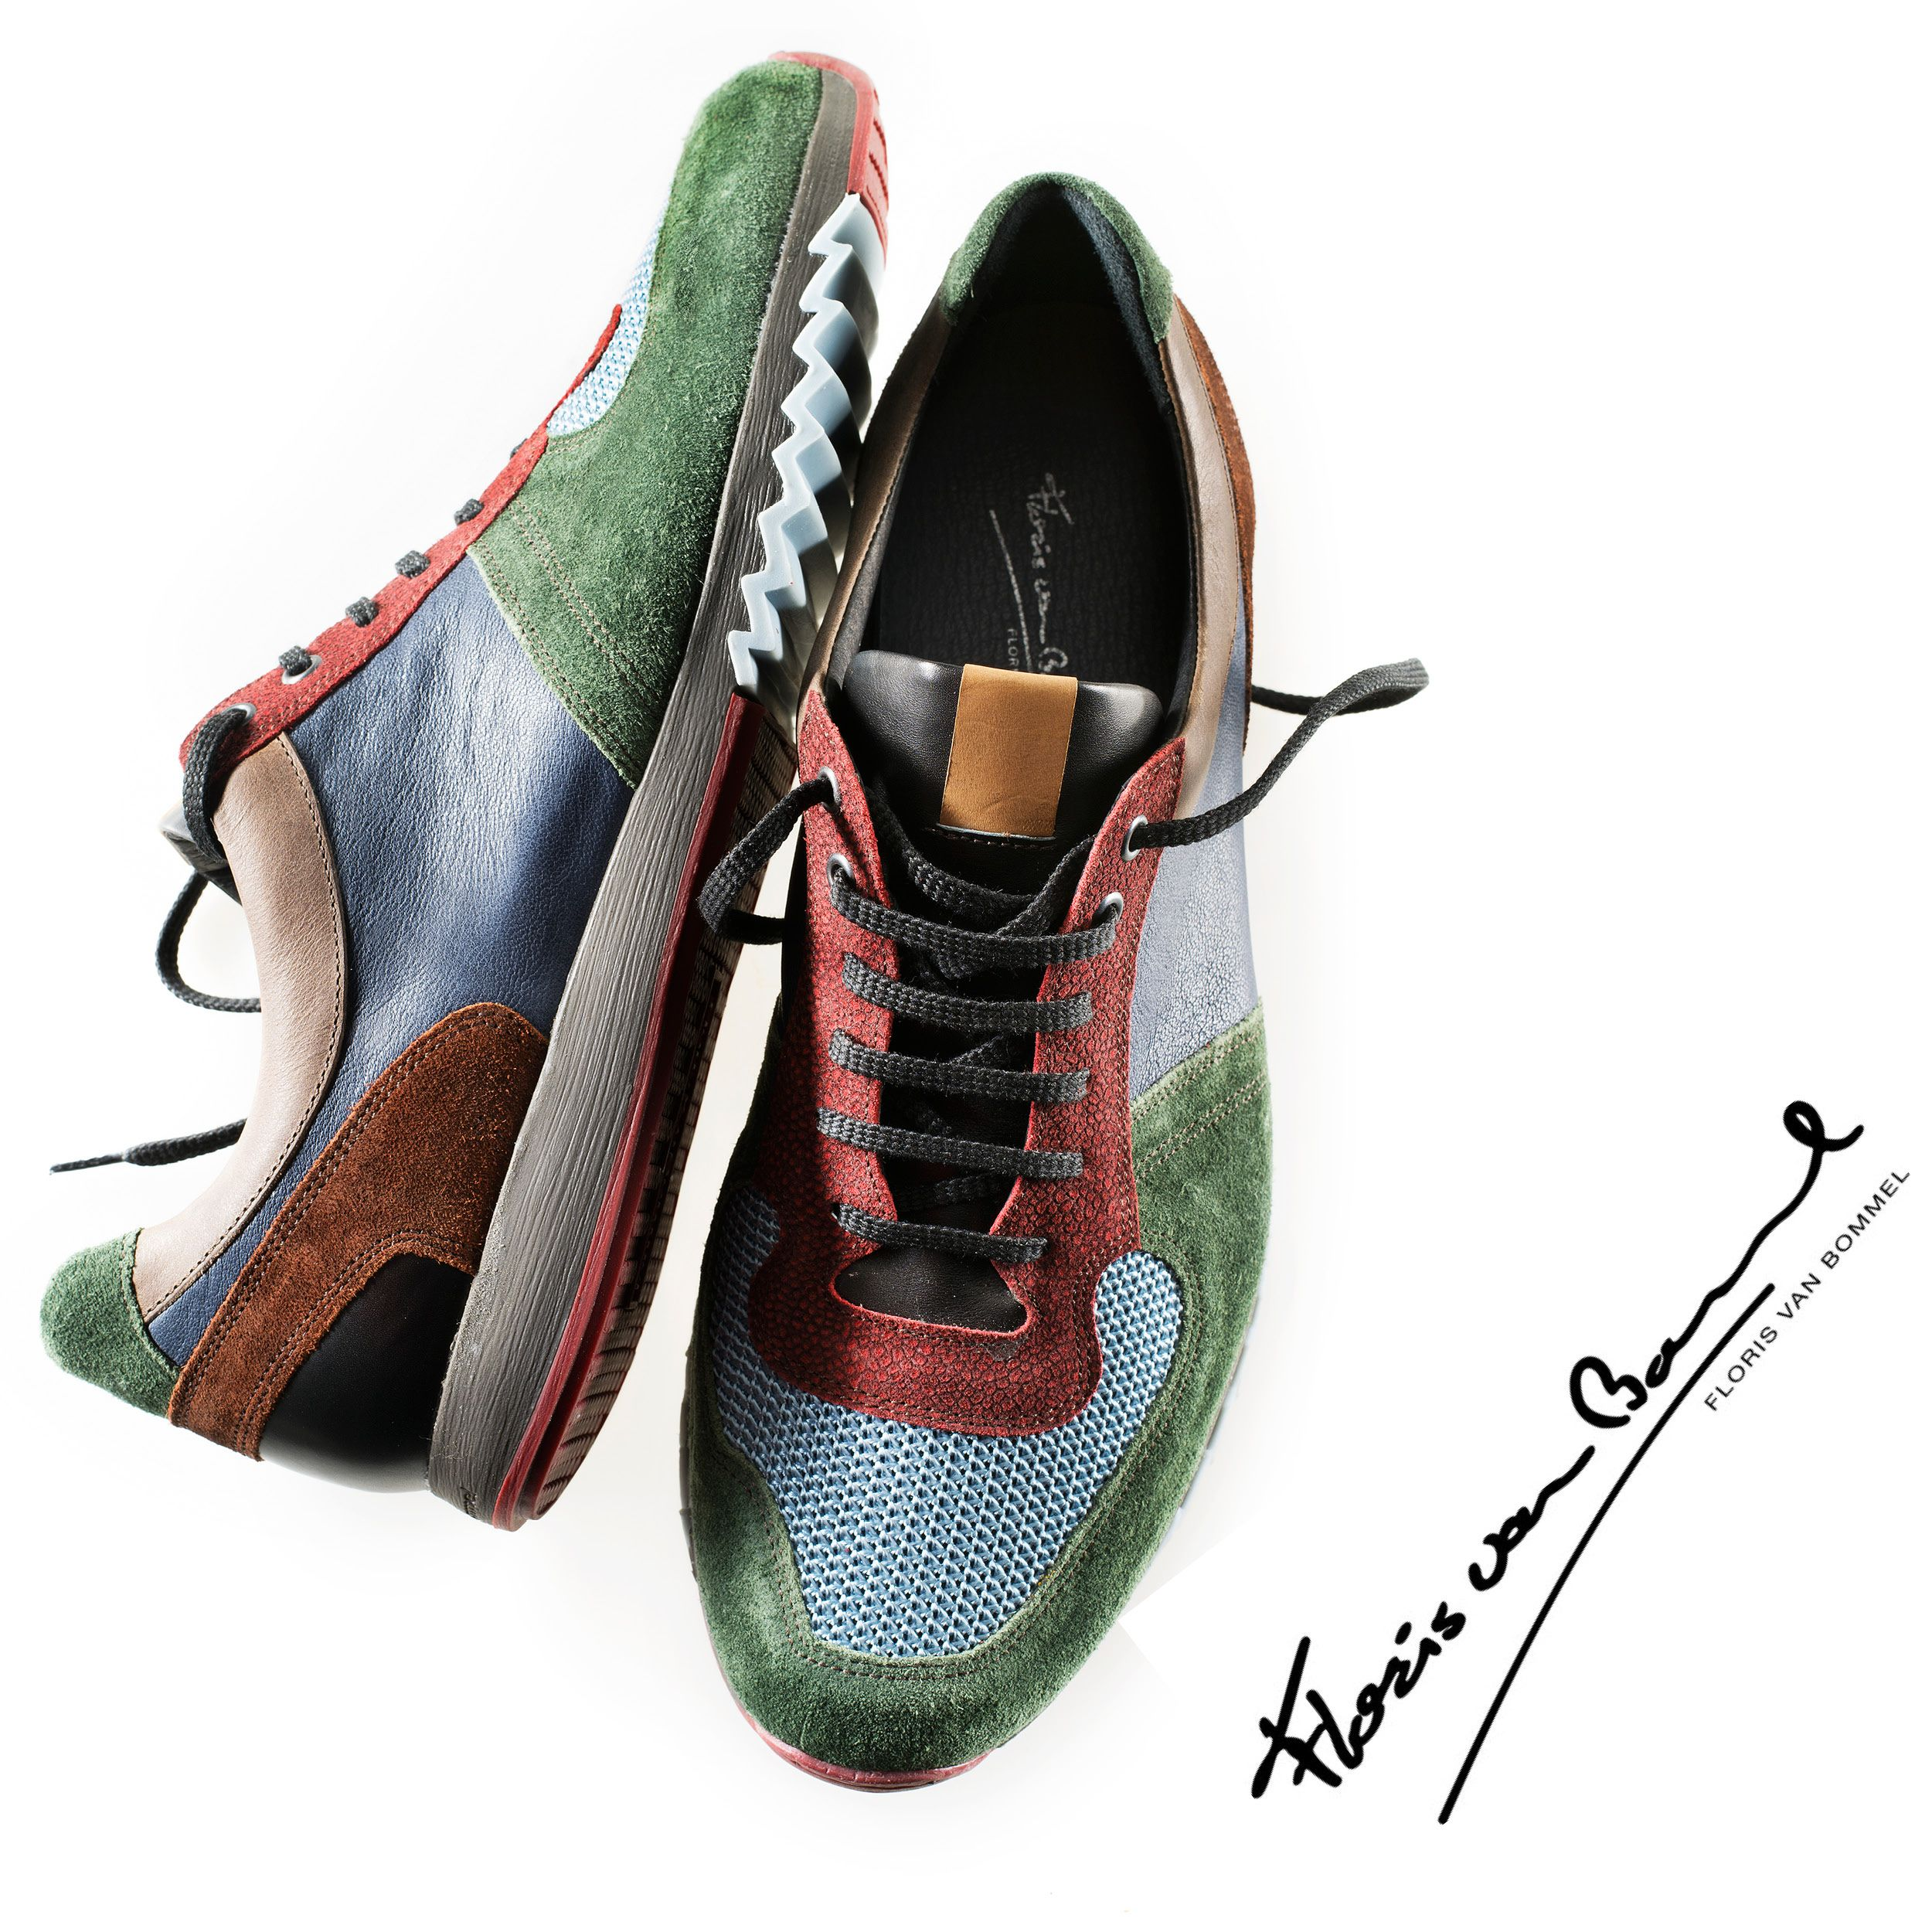 Sporty chic with Floris van Bommel @ www.labottega.be